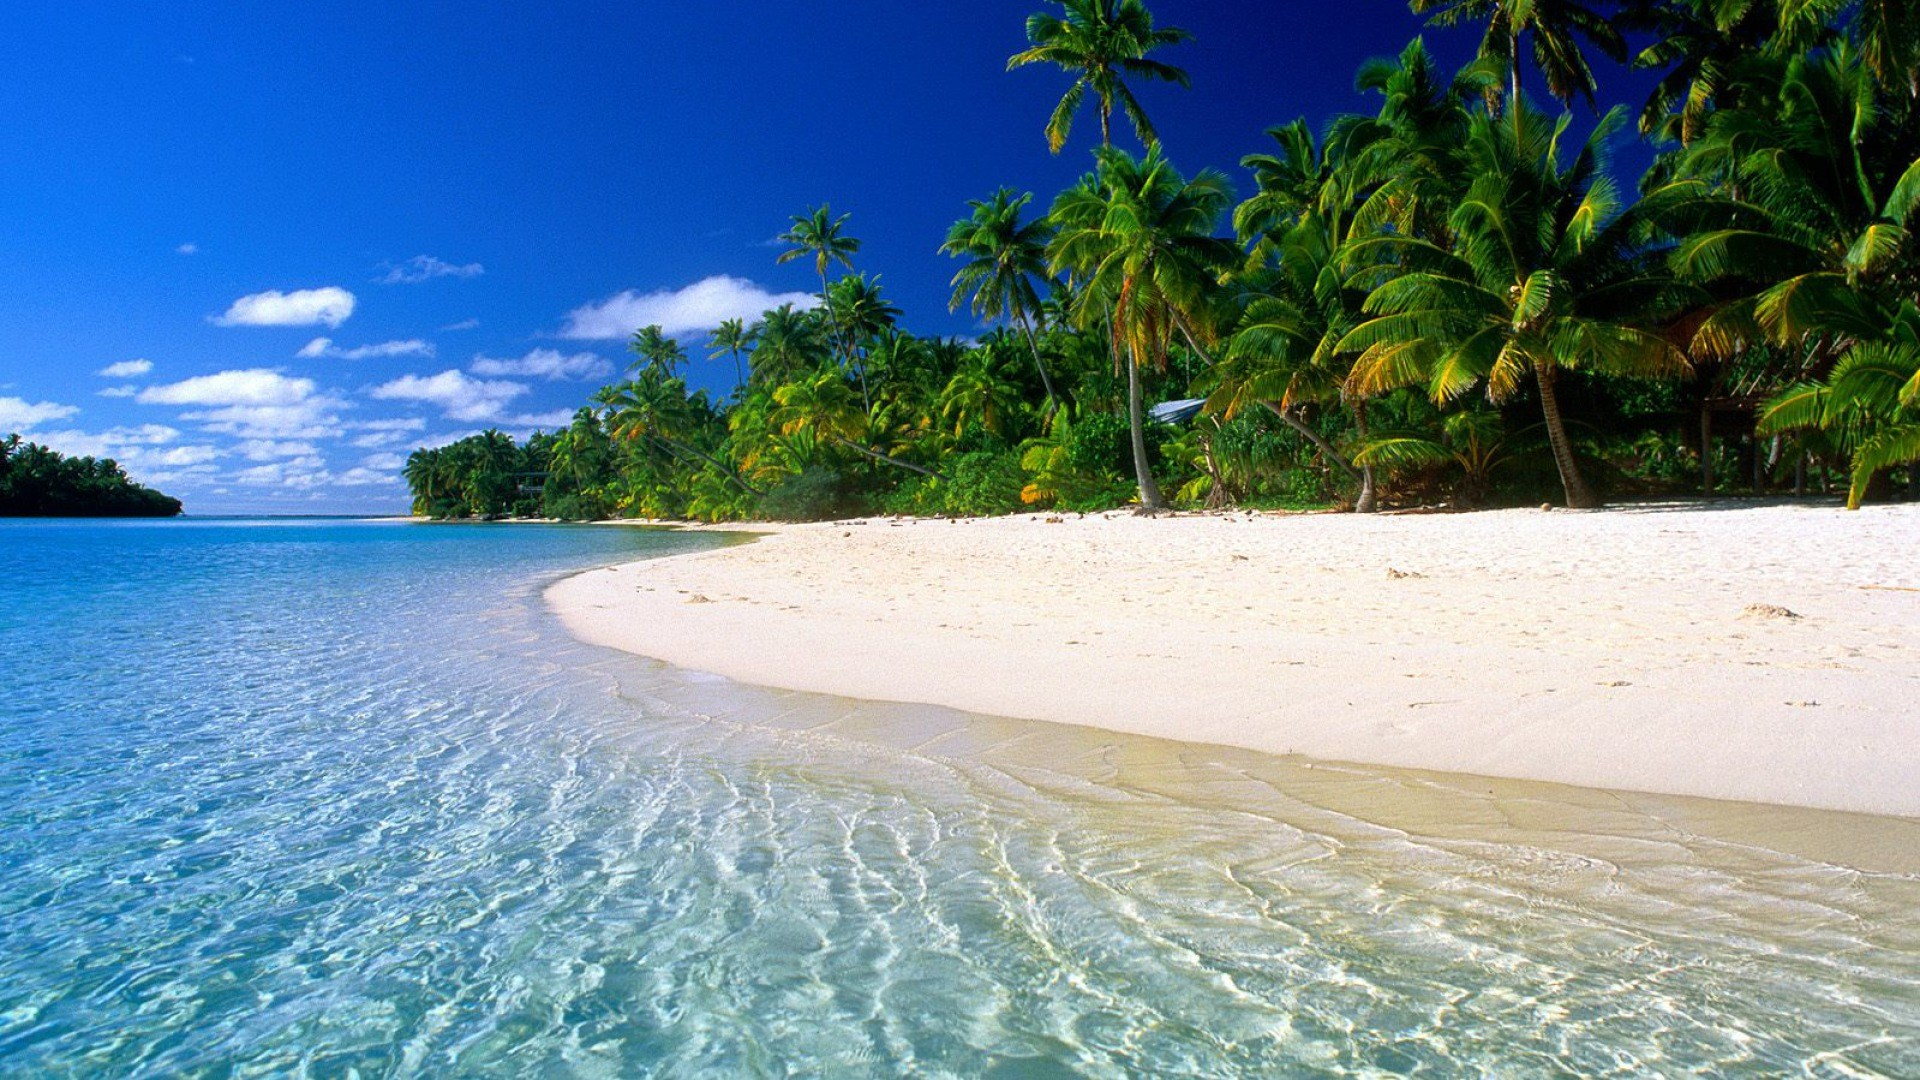 beach-free-hd-widescreen-1920x1080-wallpaper-wp3802897